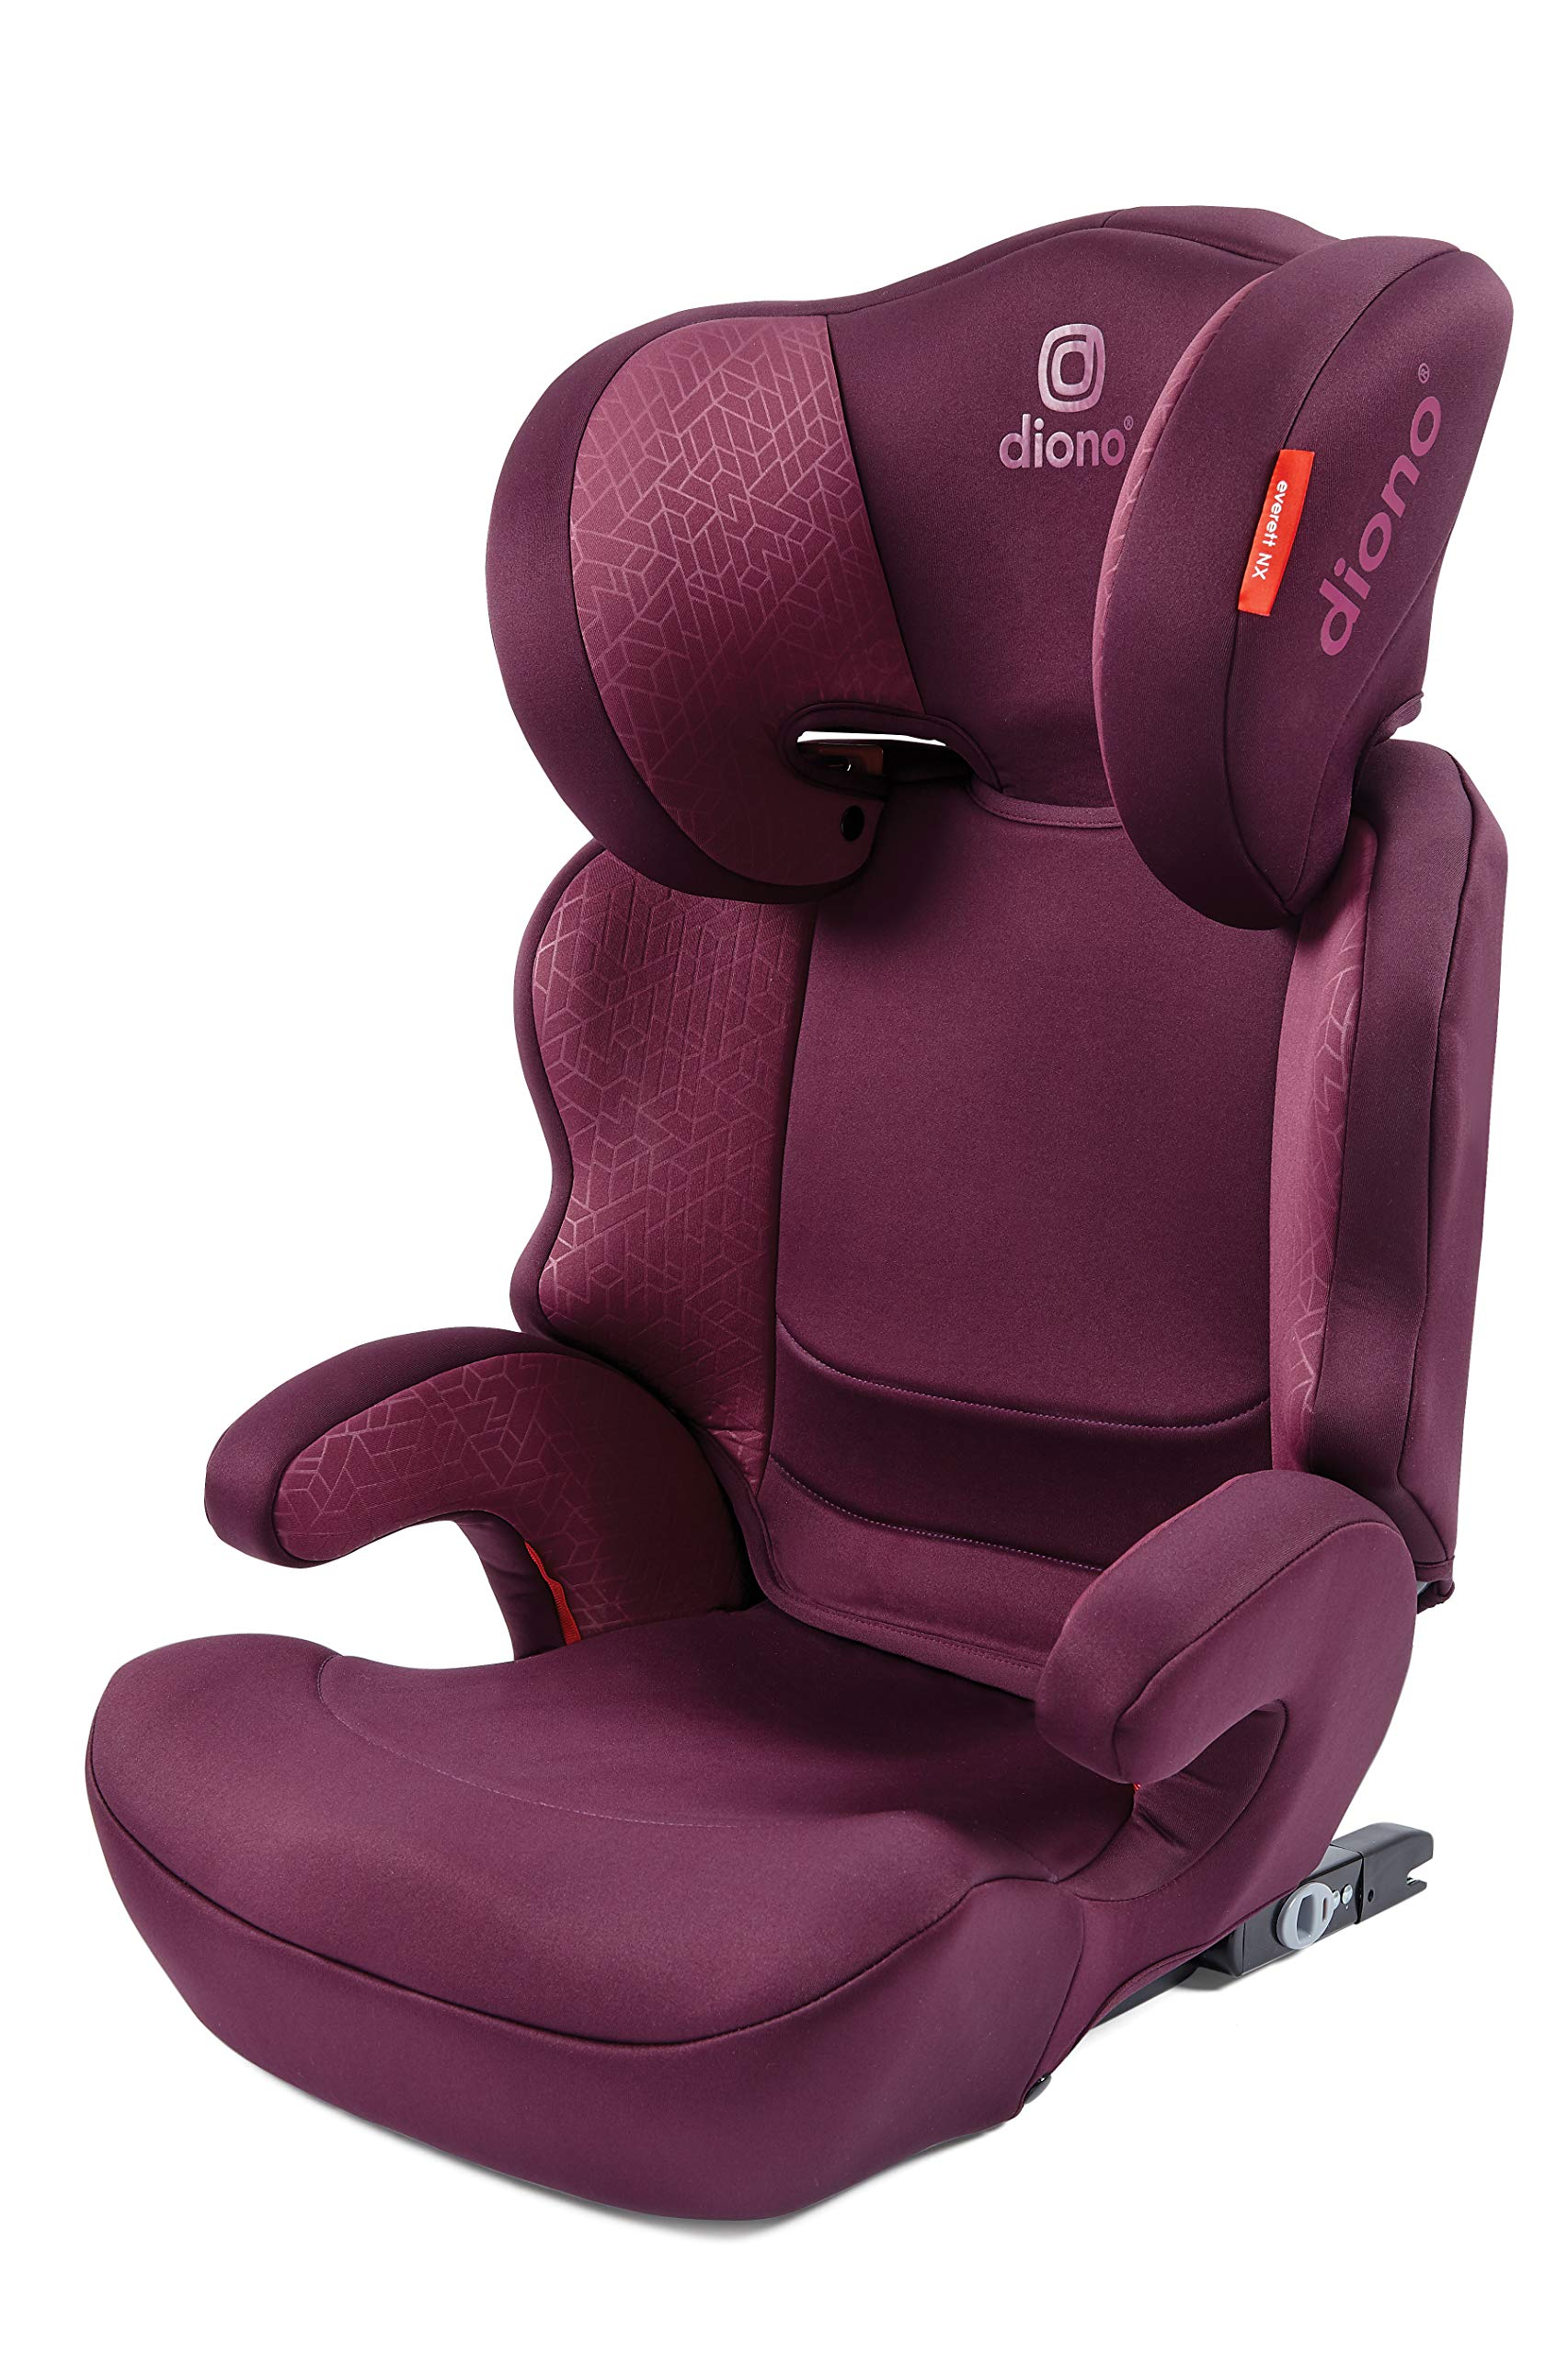 Diono Everett NXT Fix Highback Booster Seat - 7 Position Adjustable Headrest, Group 2/3 (15 - 36 kg and Up to 160 cm In Height), Approx. 4-12 Years, Plum Diono Designed to grow: group 2/3 car seat is suitable from 18kg - 50kg, approx. 4 to 12 years old. The 7-position adjustable headrest can be altered using the handle on the back of the seat Superior safety: cushioned side impact protection has been engineered and tested to the highest standards. The ergonomic design includes extra padding to provide comfort and security as a child grows Universal connectivity: parents can install the seat using the vehicle seatbelt or use the integrated rigid latch connectors that anchor the seat to the car allowing the child to buckle themselves in 1